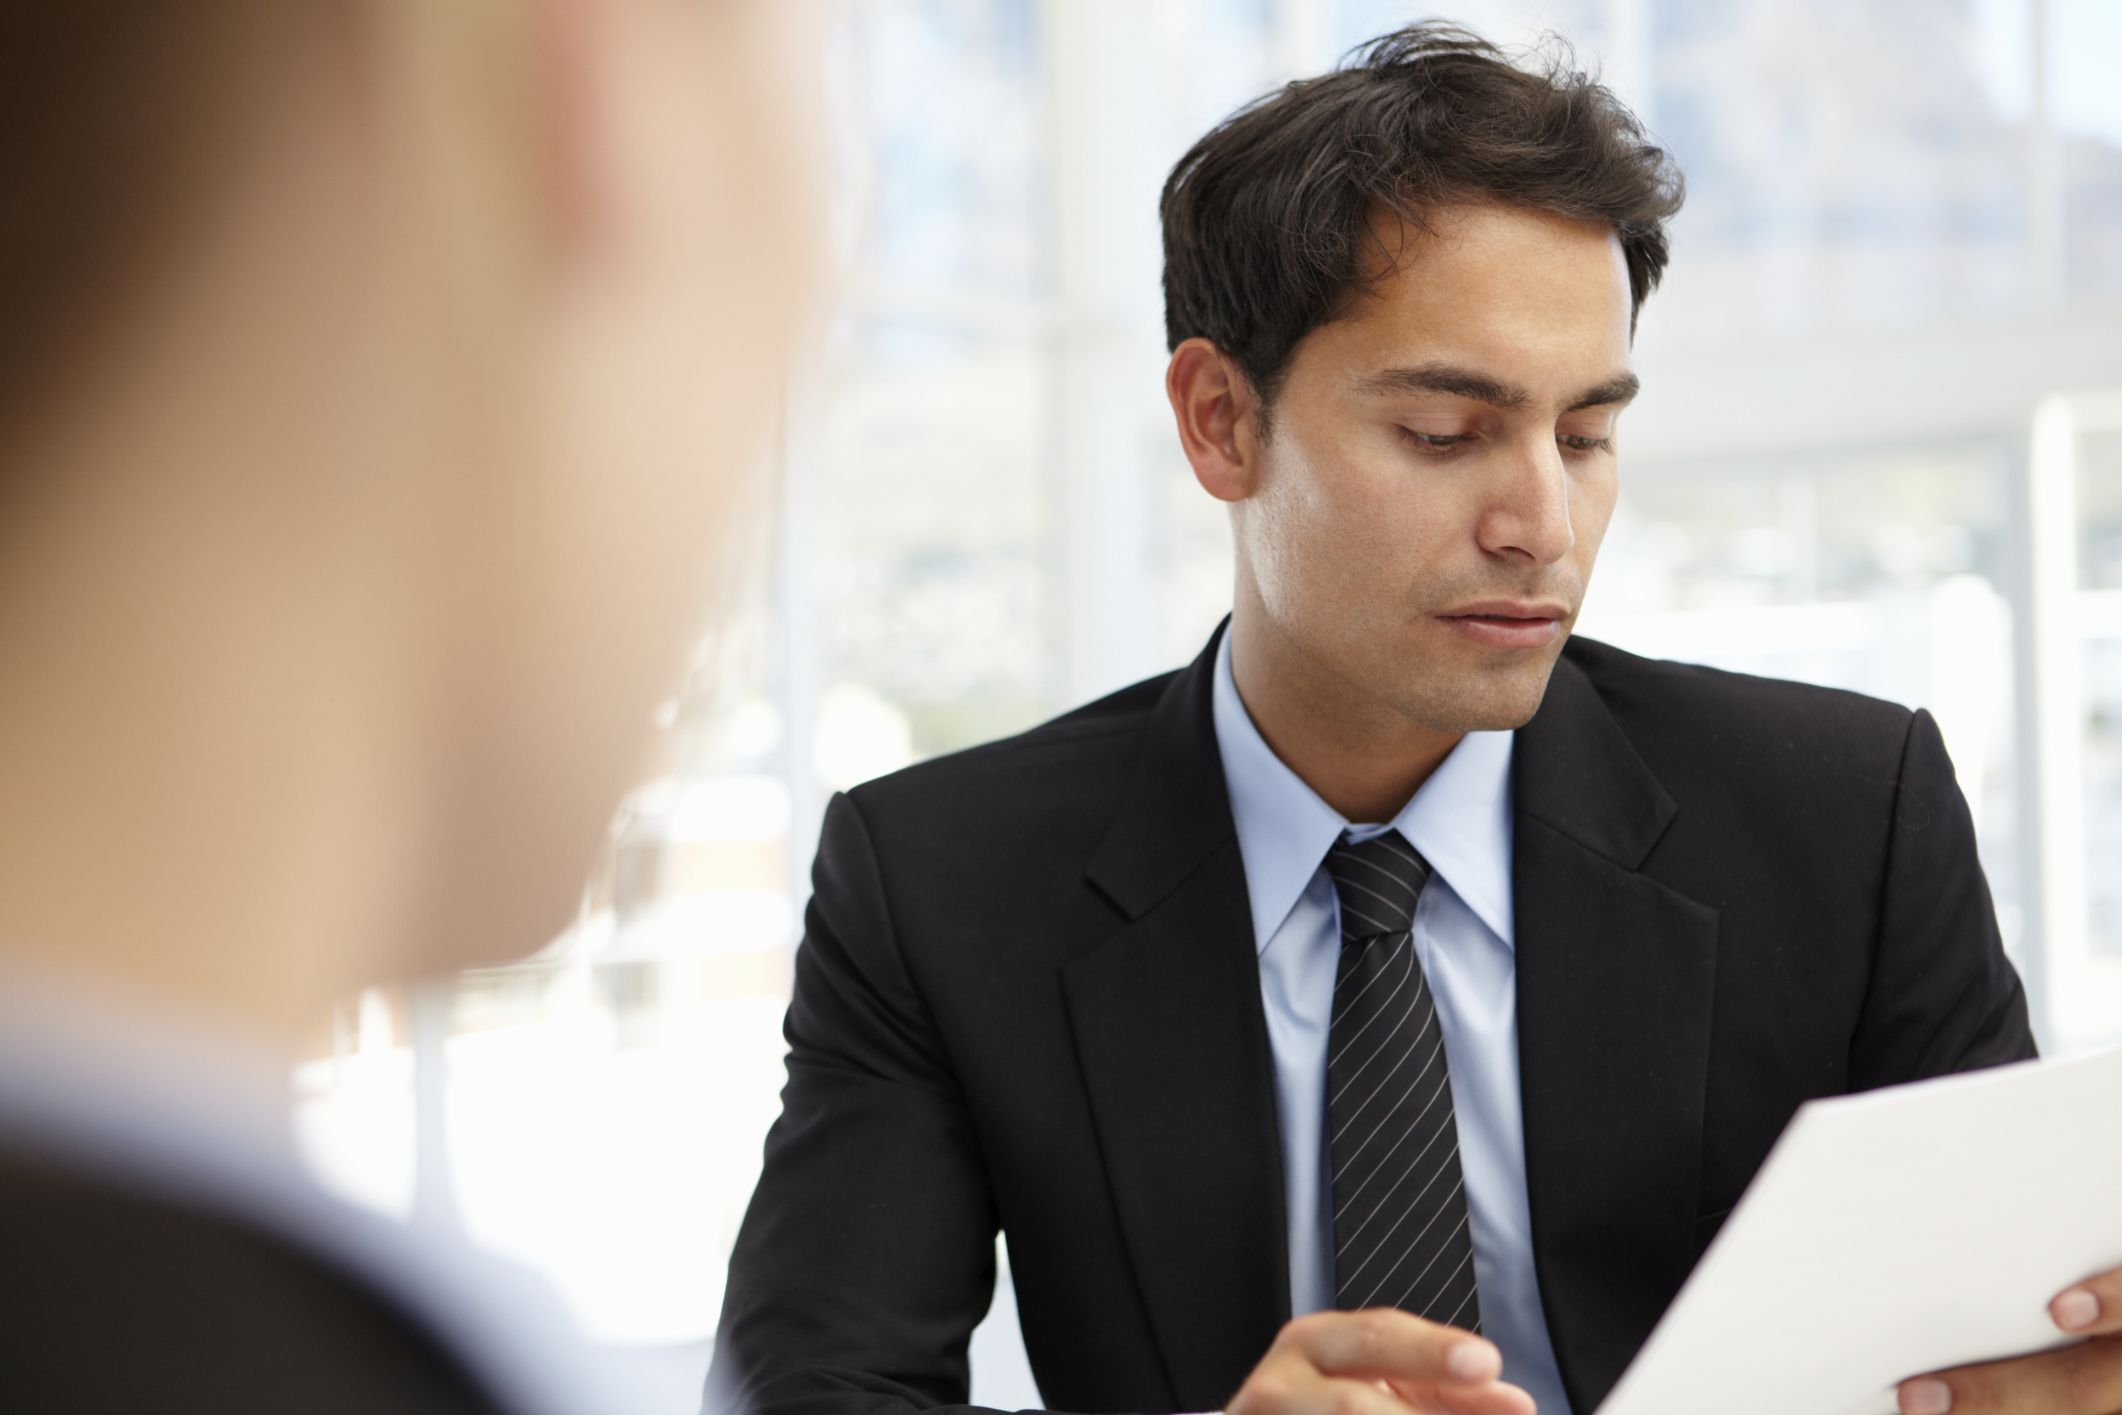 9 Résumé Mistakes You Can't Afford To Make Job interview